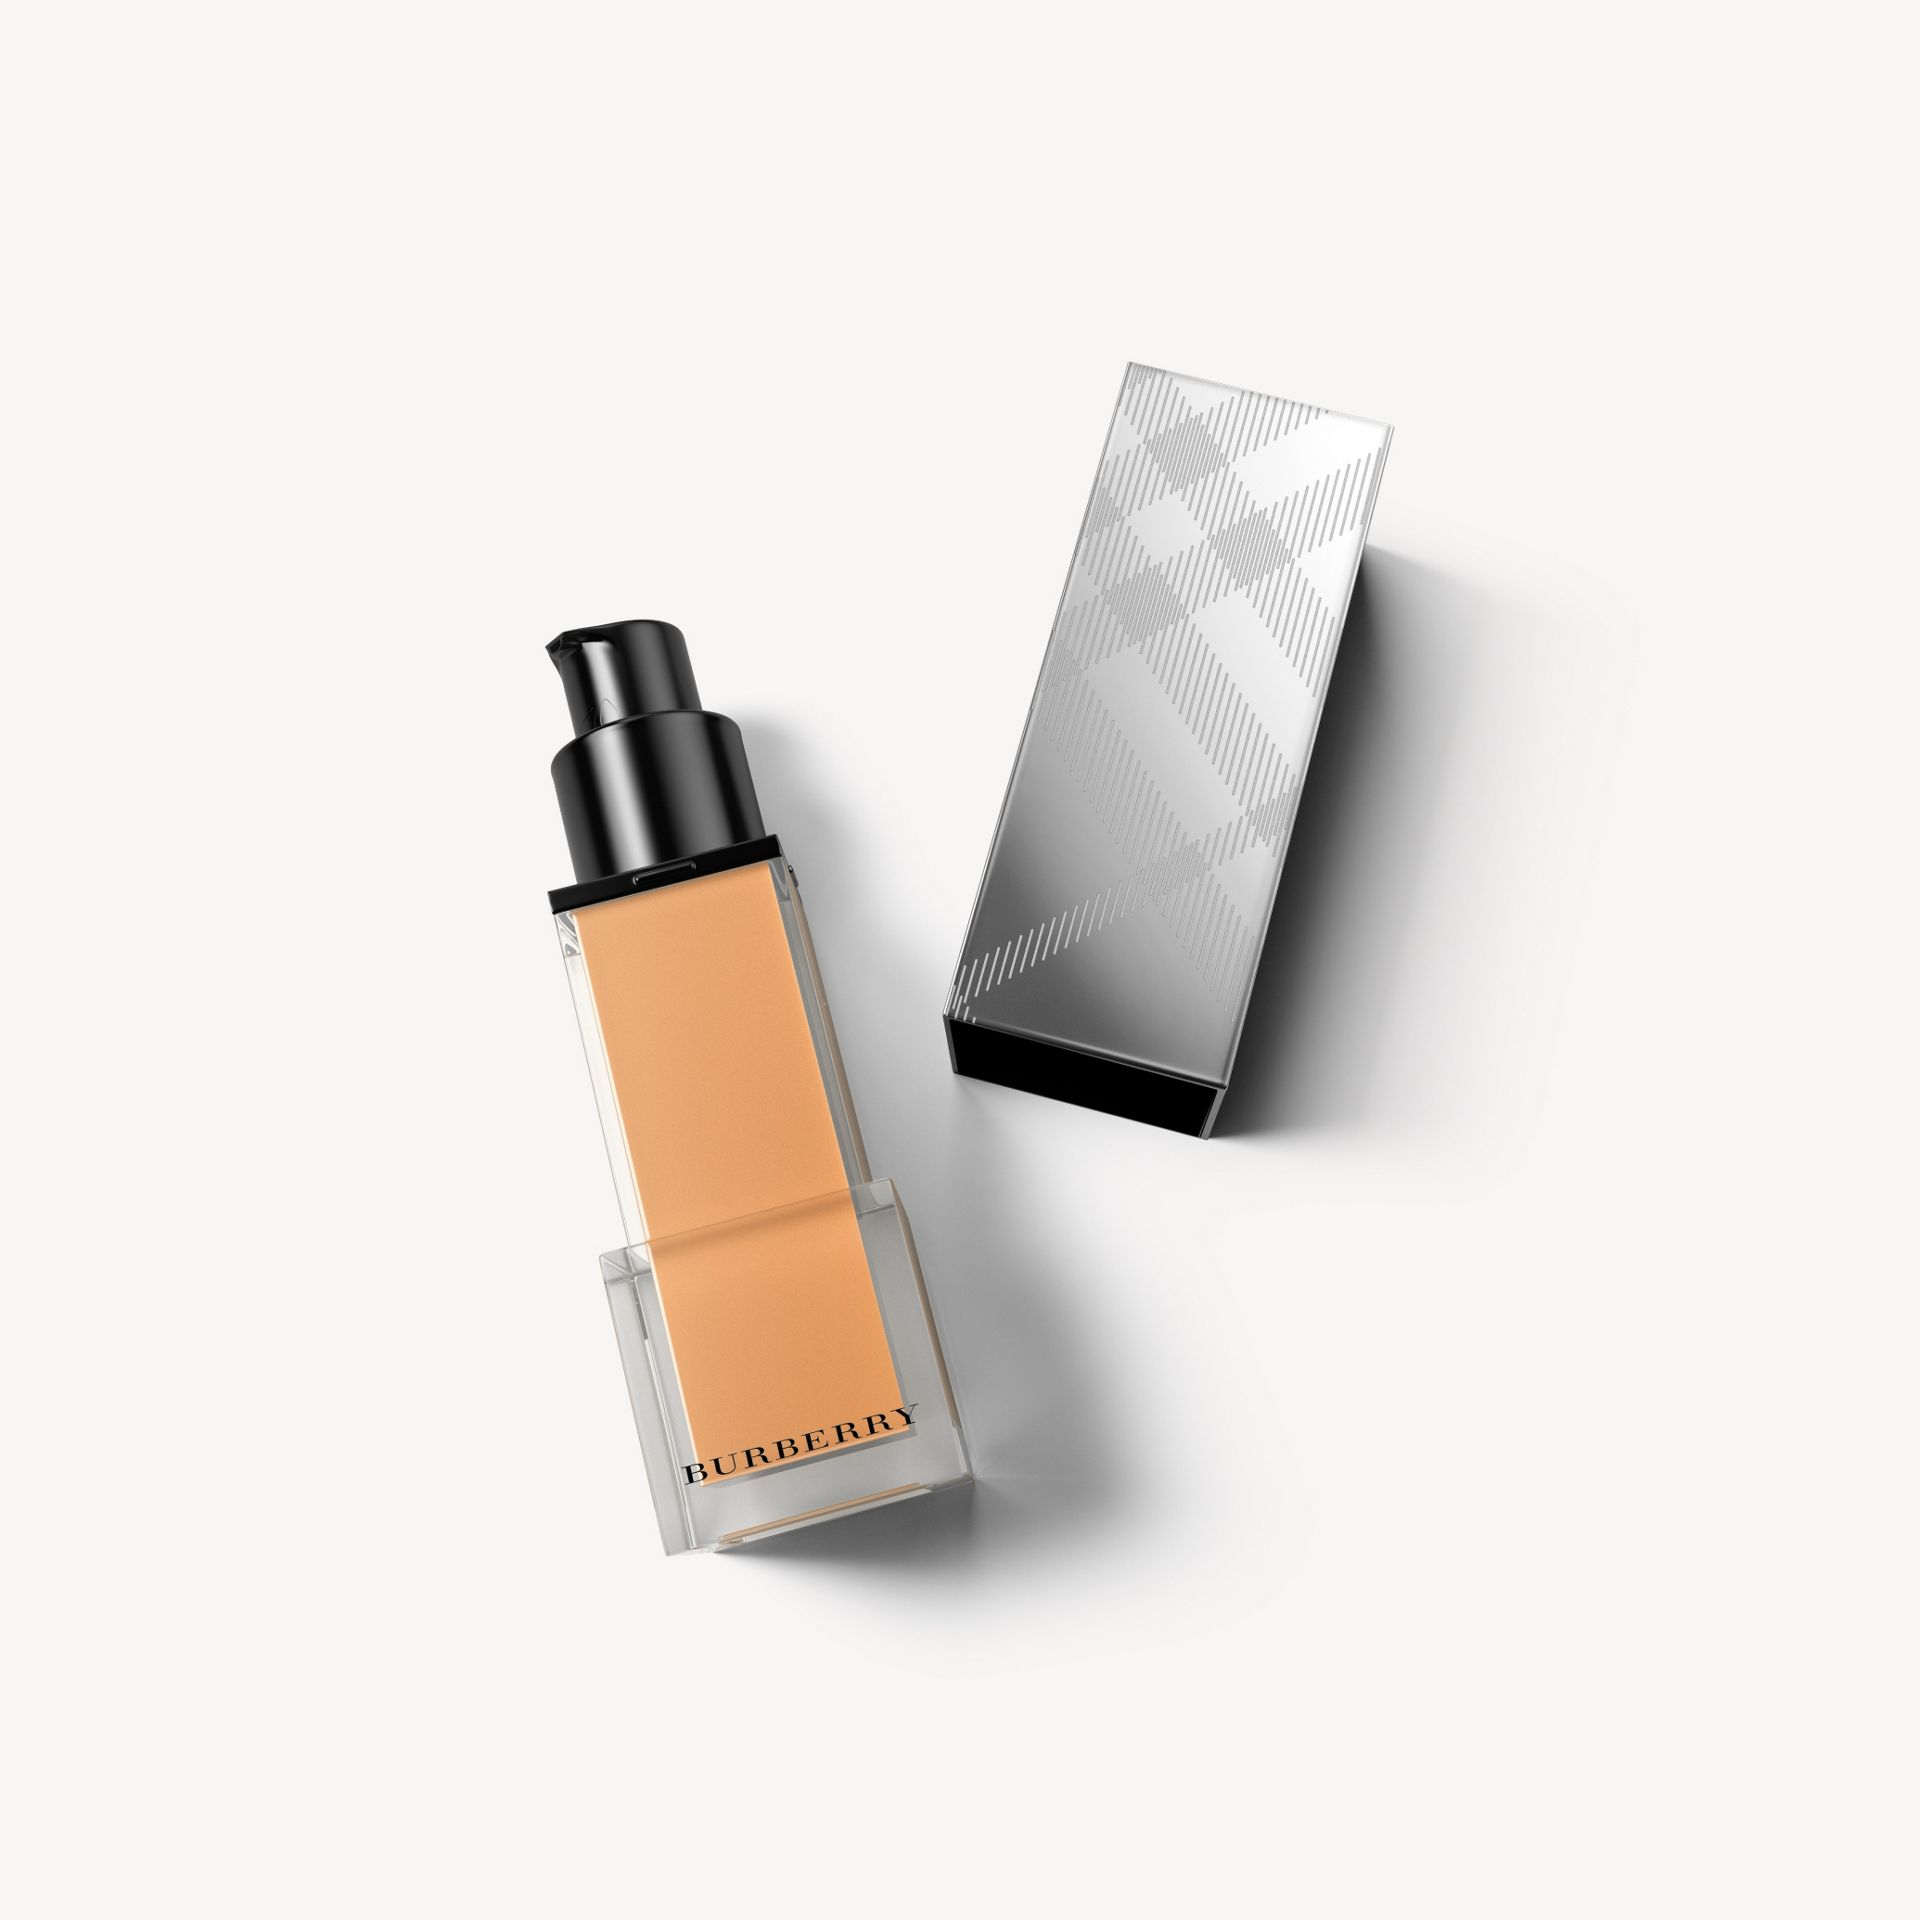 Warm honey  38 Fresh Glow Foundation SPF 15 PA+++ – Warm Honey No.38 - gallery image 1